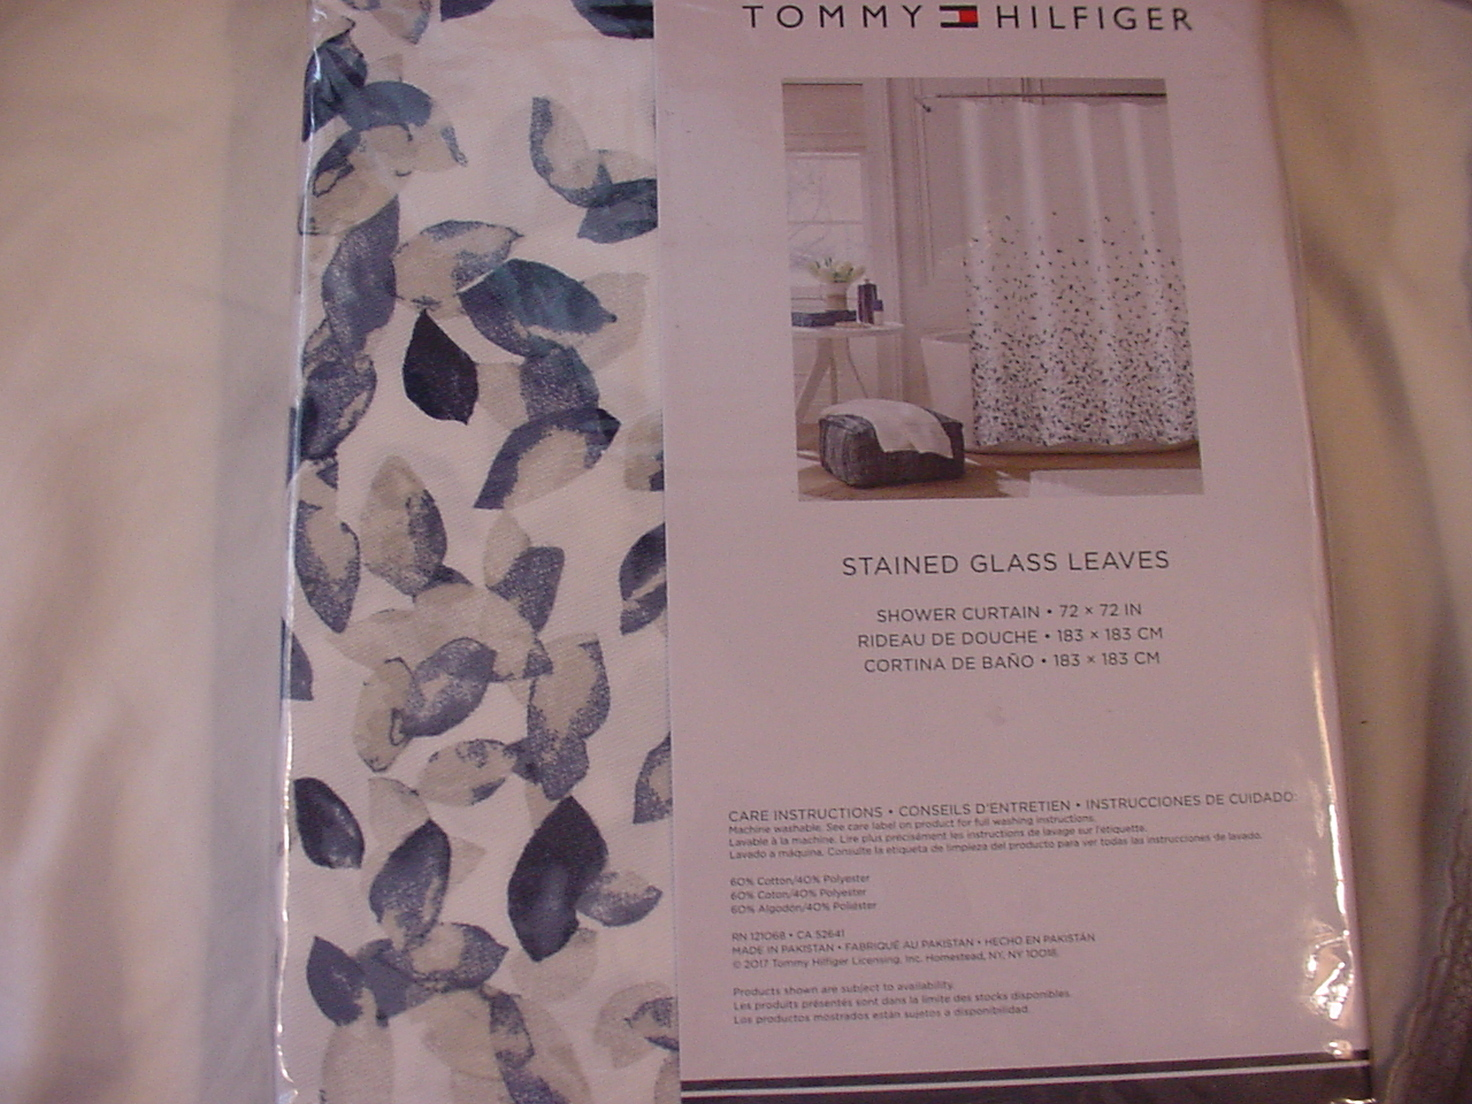 Tommy Hilfiger Stained Glass Leaves Blue Gray White Shower Curtain